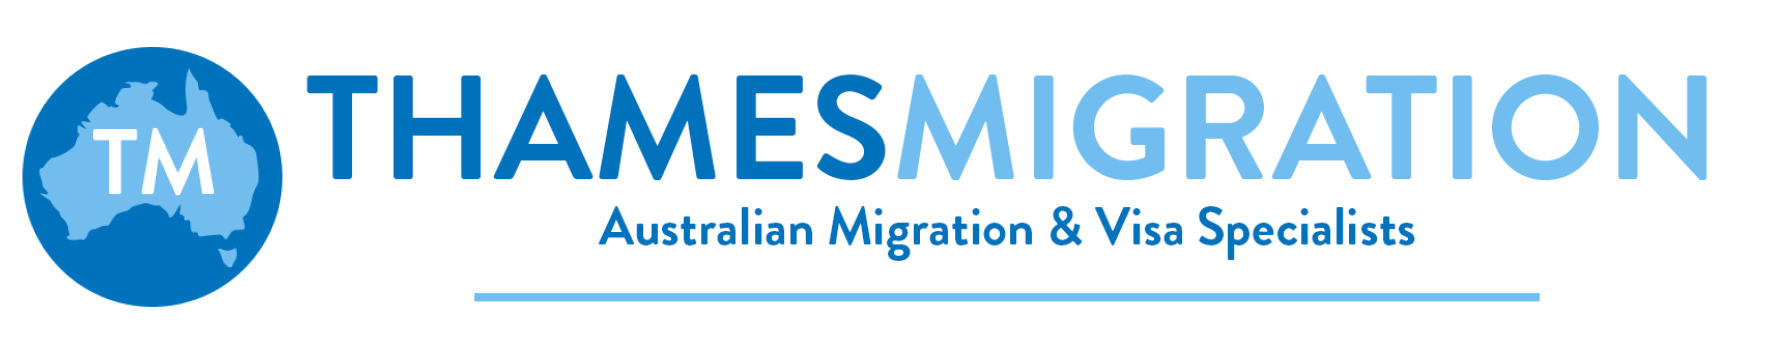 Thames Migration, Australian Emigration and Visa Specialists